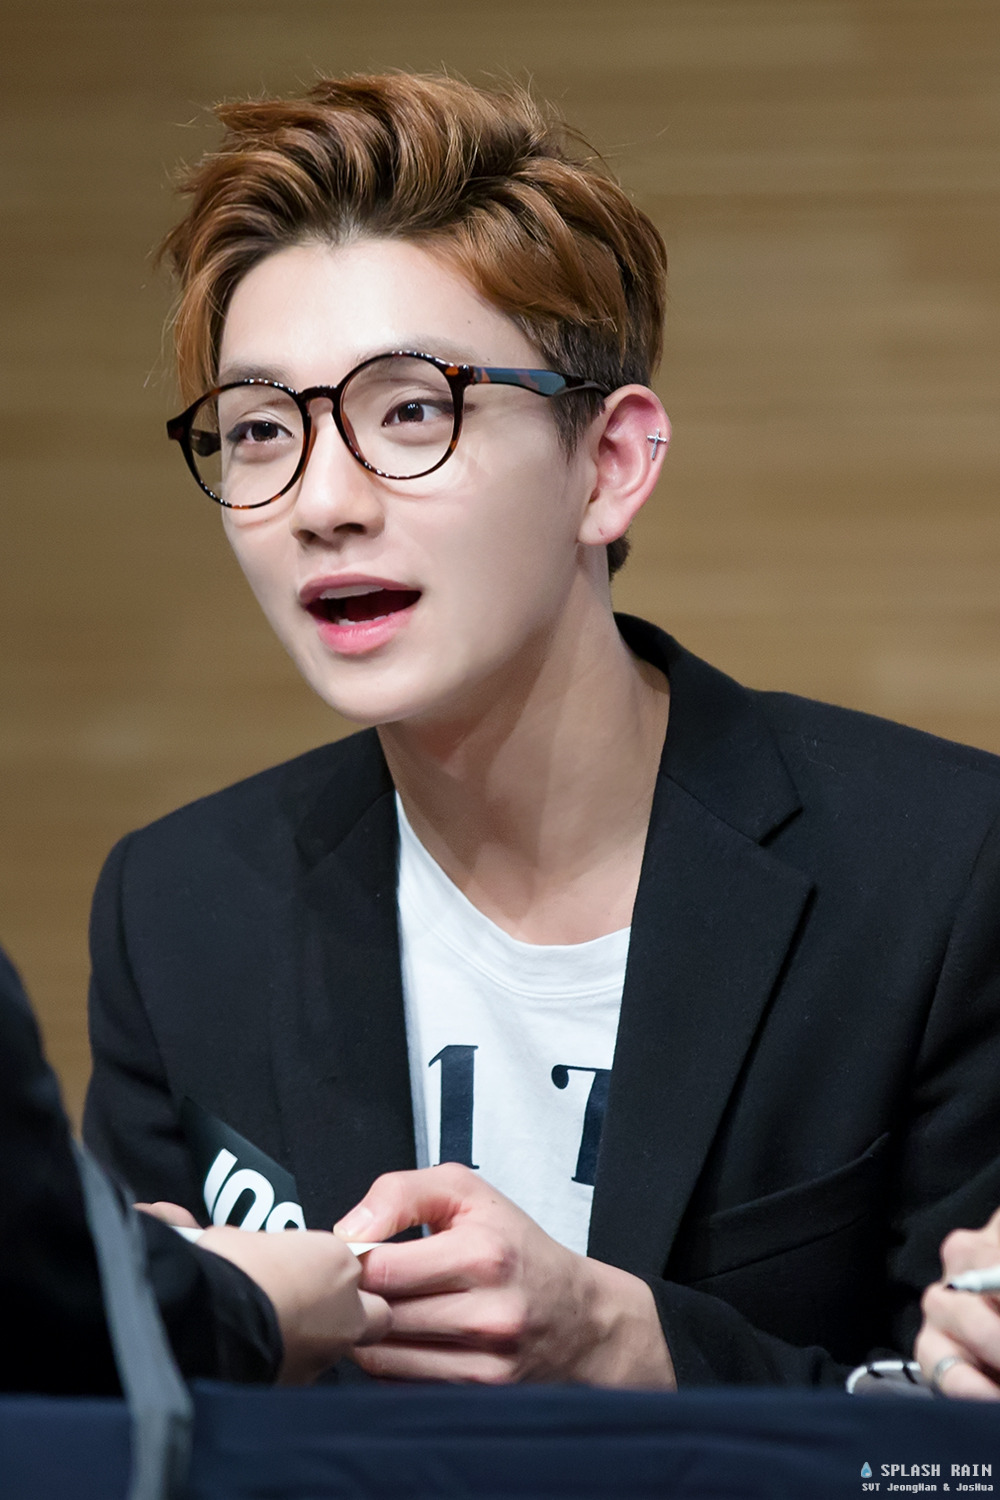 480372d867d3 Joshua is cute as a button in his glasses! The glasses also show off his  flawless good looks.